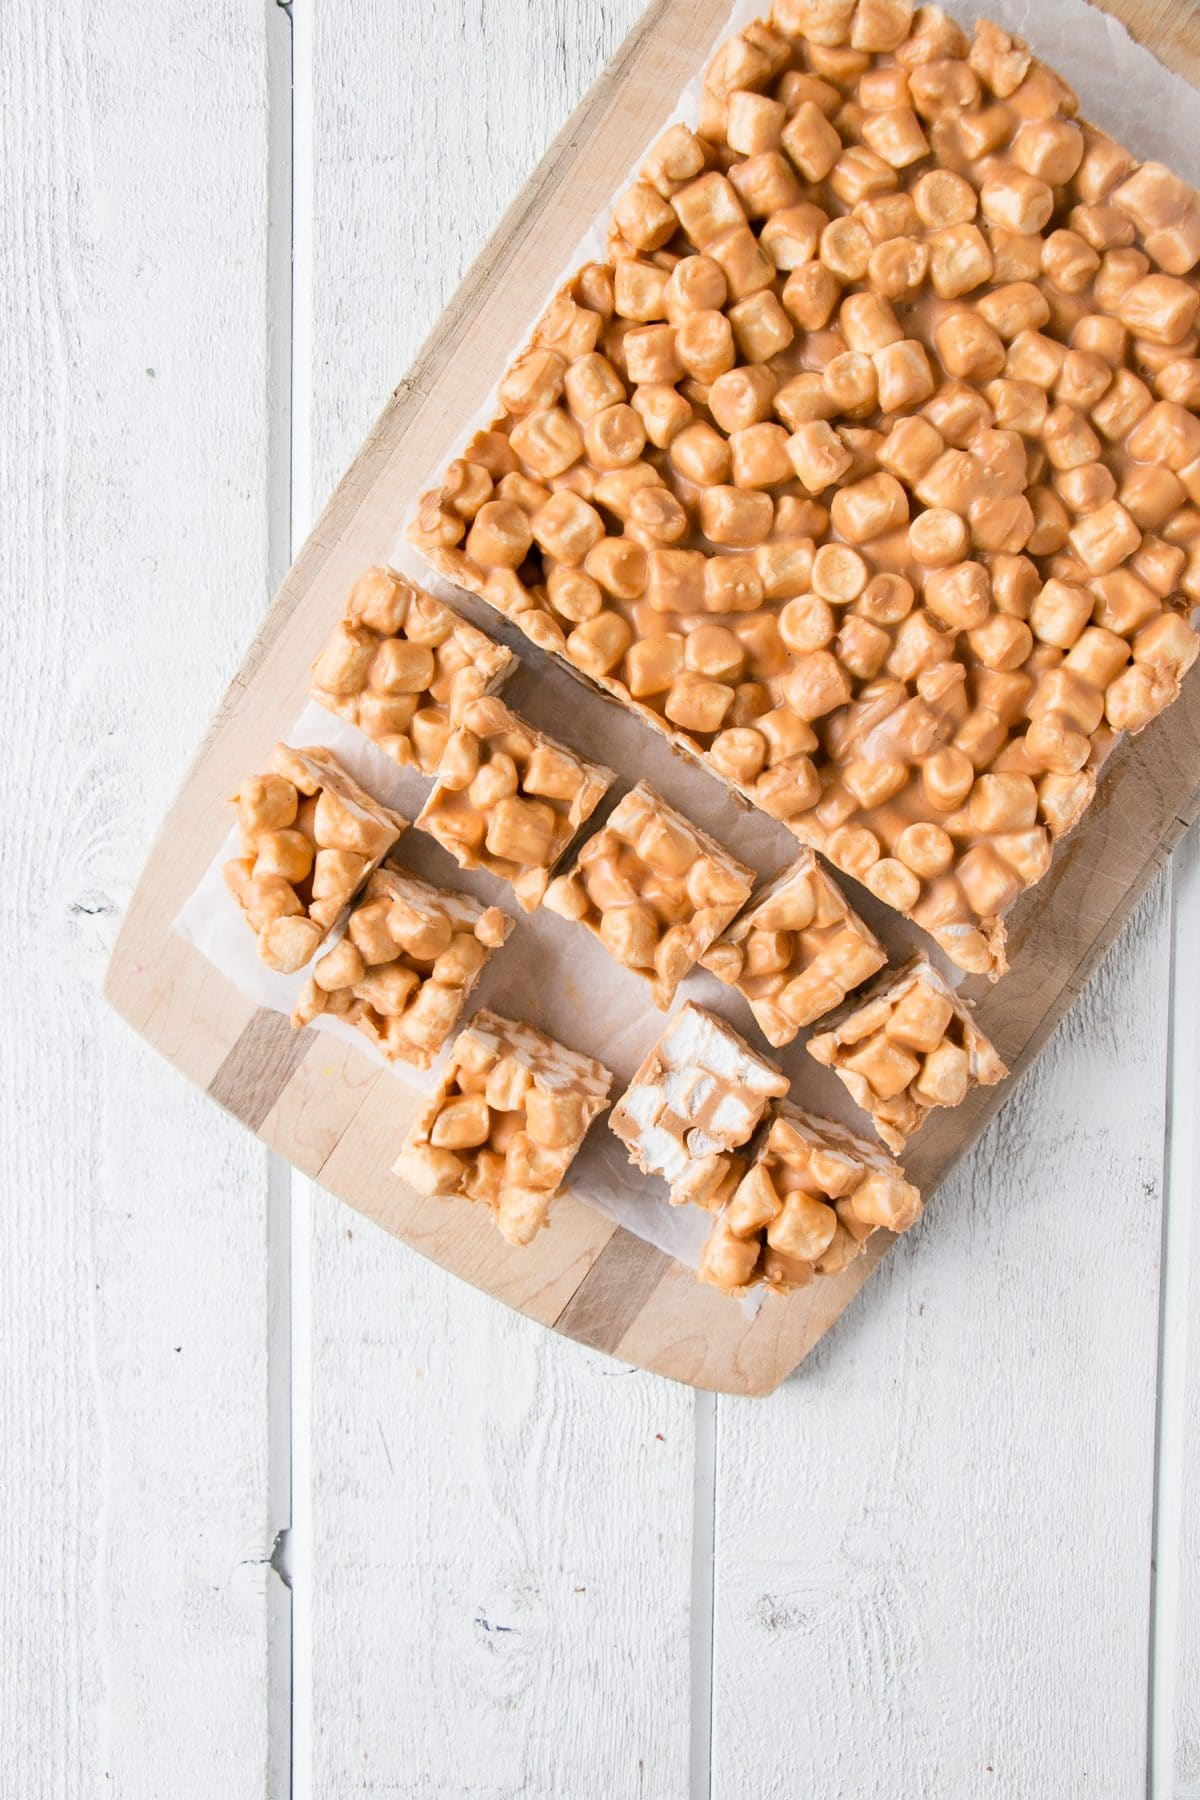 Butterscotch Peanut Butter Marshmallow Squares are a quick and easy no-bake festive treat! #christmasbaking #nobake #funfettisquares